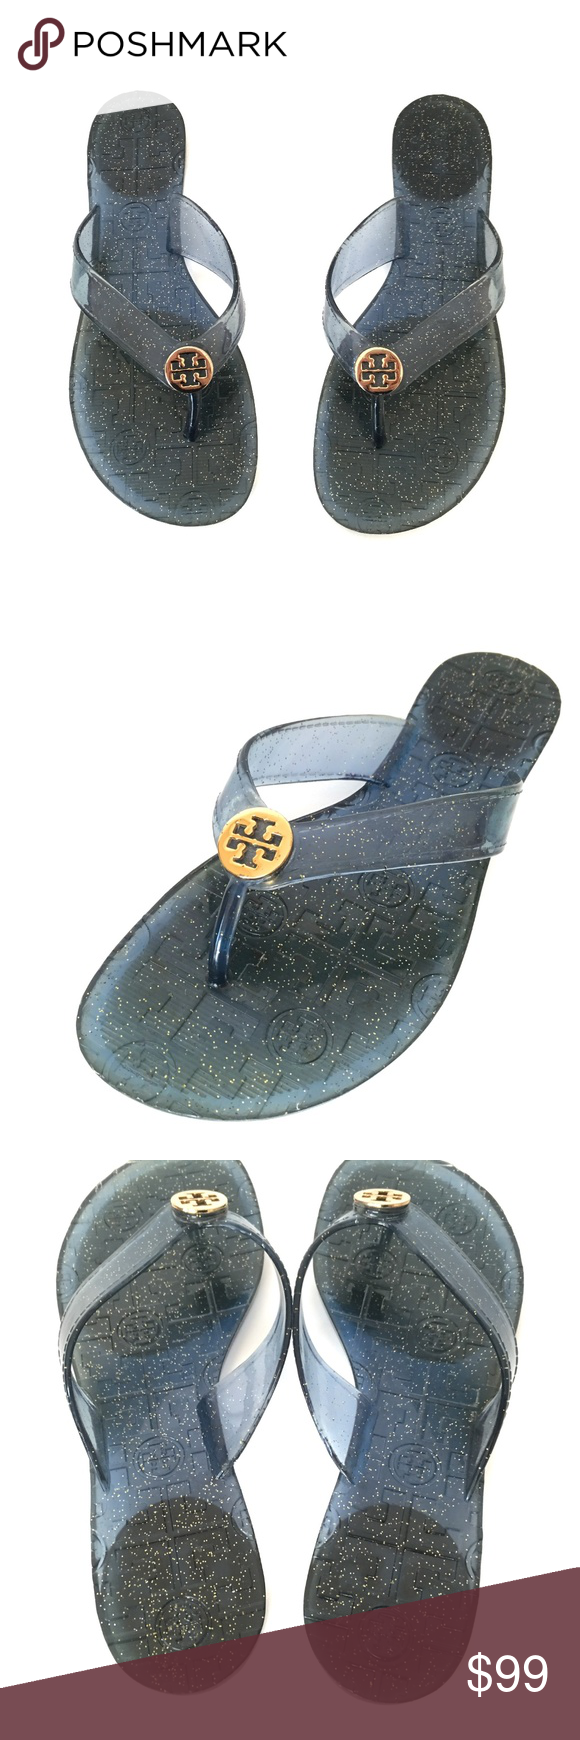 Tory Burch Thora Jelly Glitter Sandals Blue 7